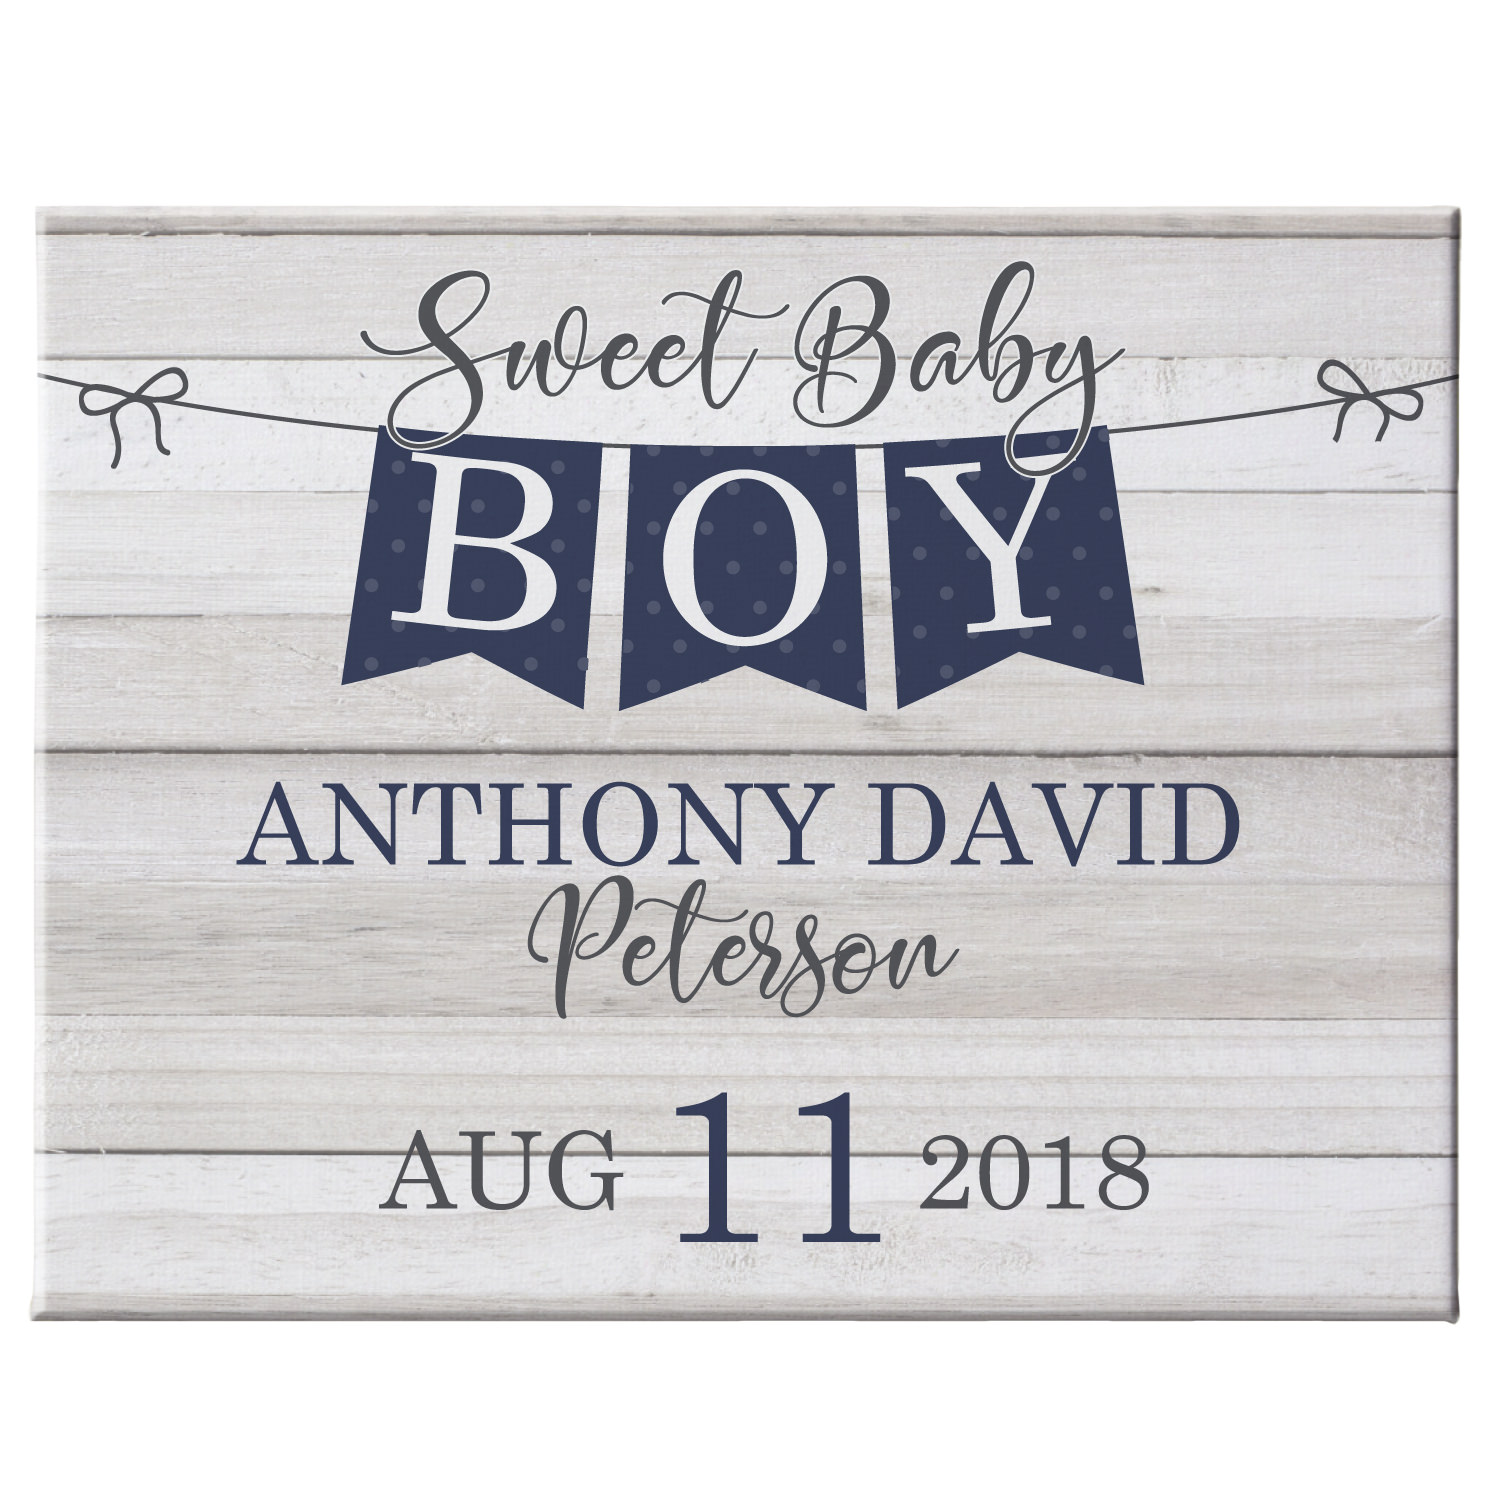 Personalized Sweet Baby Banner Canvas - Navy 11x14